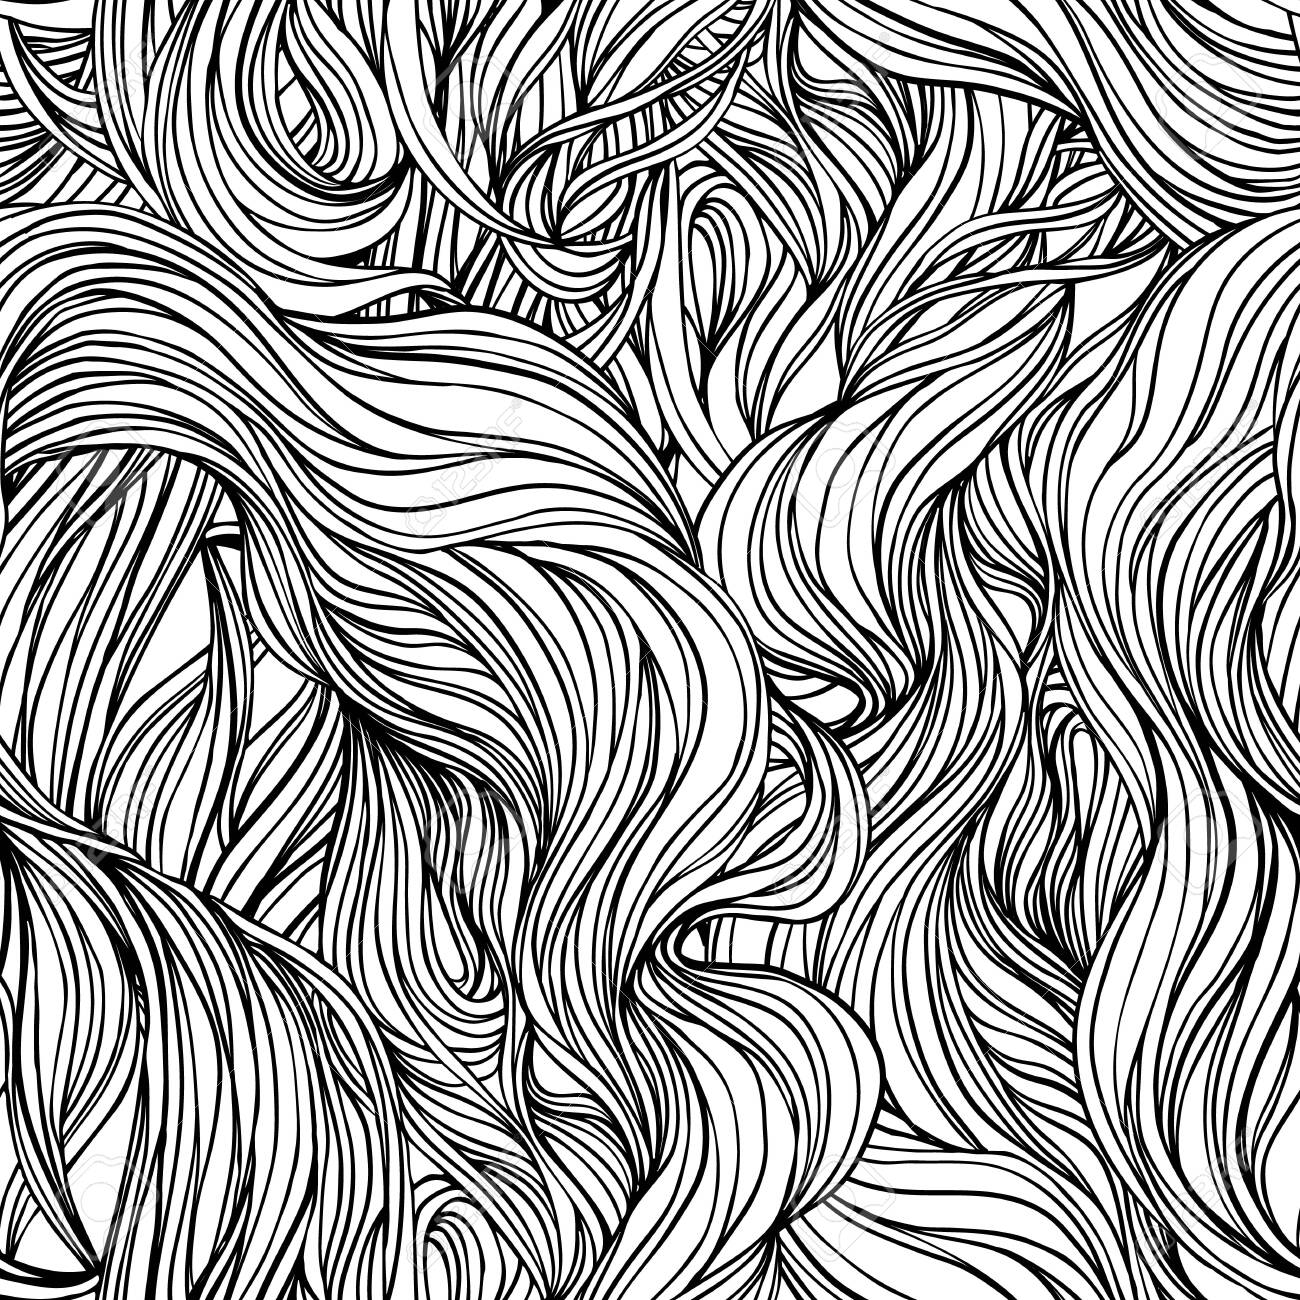 Natural texture. Decorative hand drawn doodle ornamental curly seamless pattern. Vector endless background. Stormy sea line art drawing. Splash ocean, clouds or hair. - 138770373